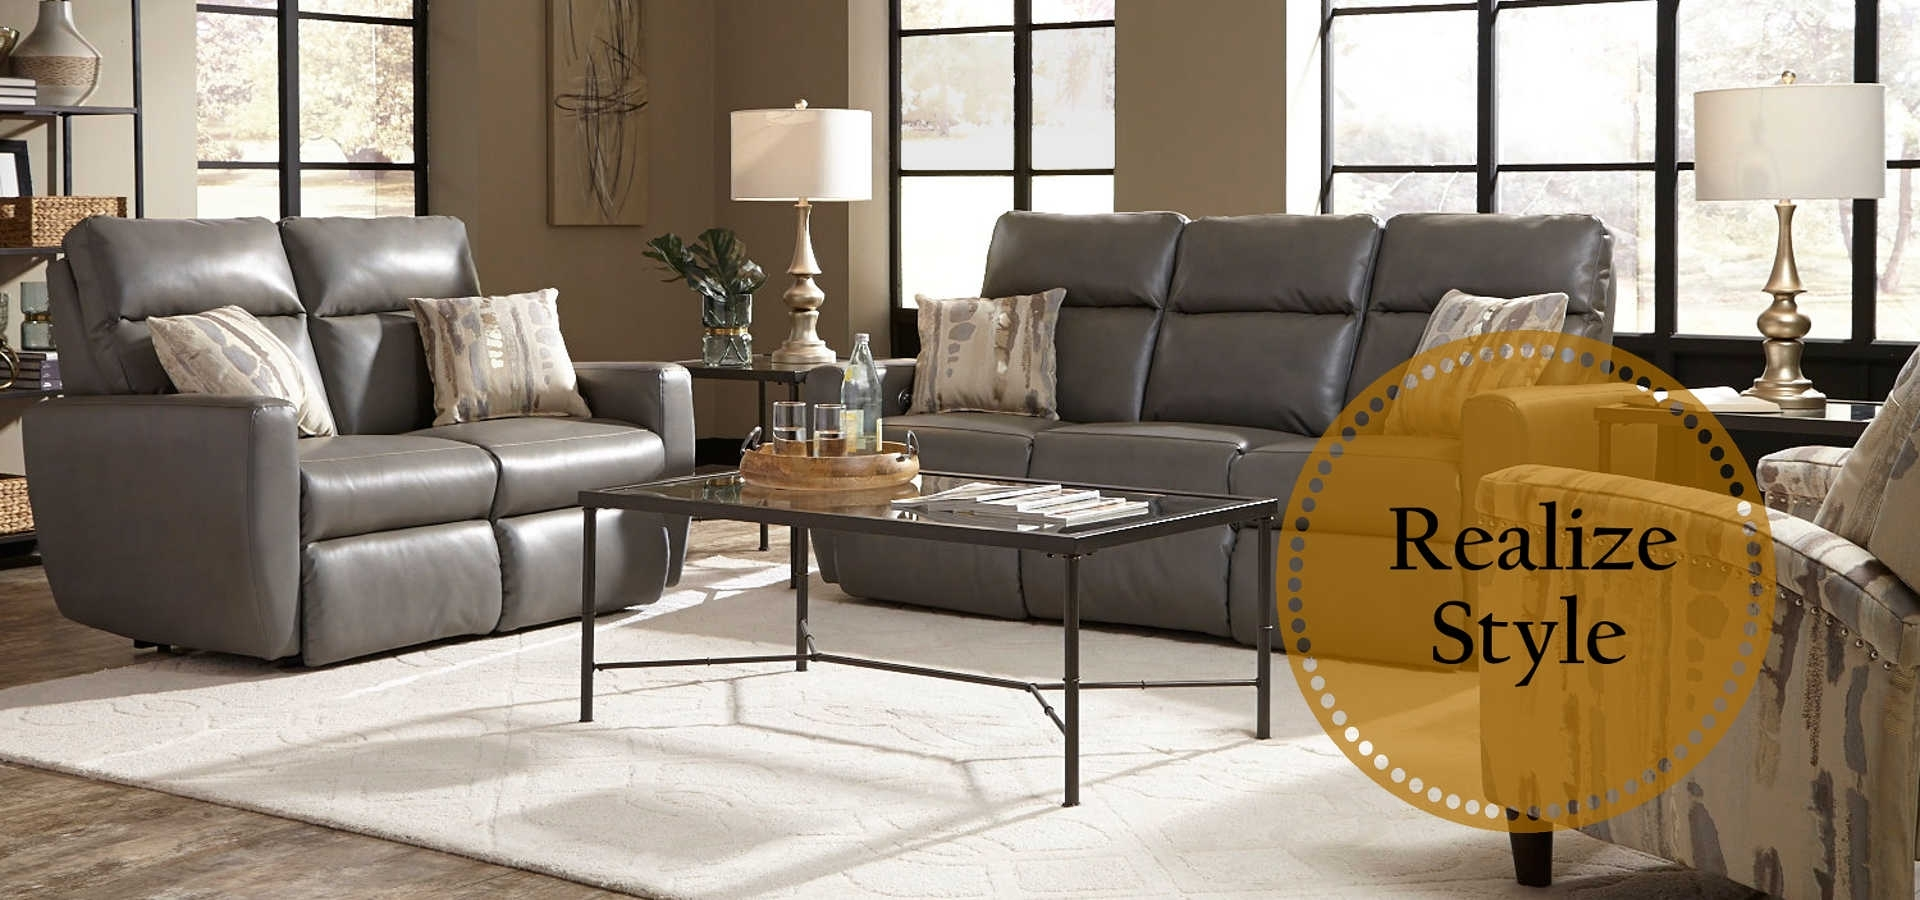 American Made Motion Furniture & Reclining Living Room Sets For Travis Cognac Leather 6 Piece Power Reclining Sectionals With Power Headrest & Usb (Image 1 of 25)